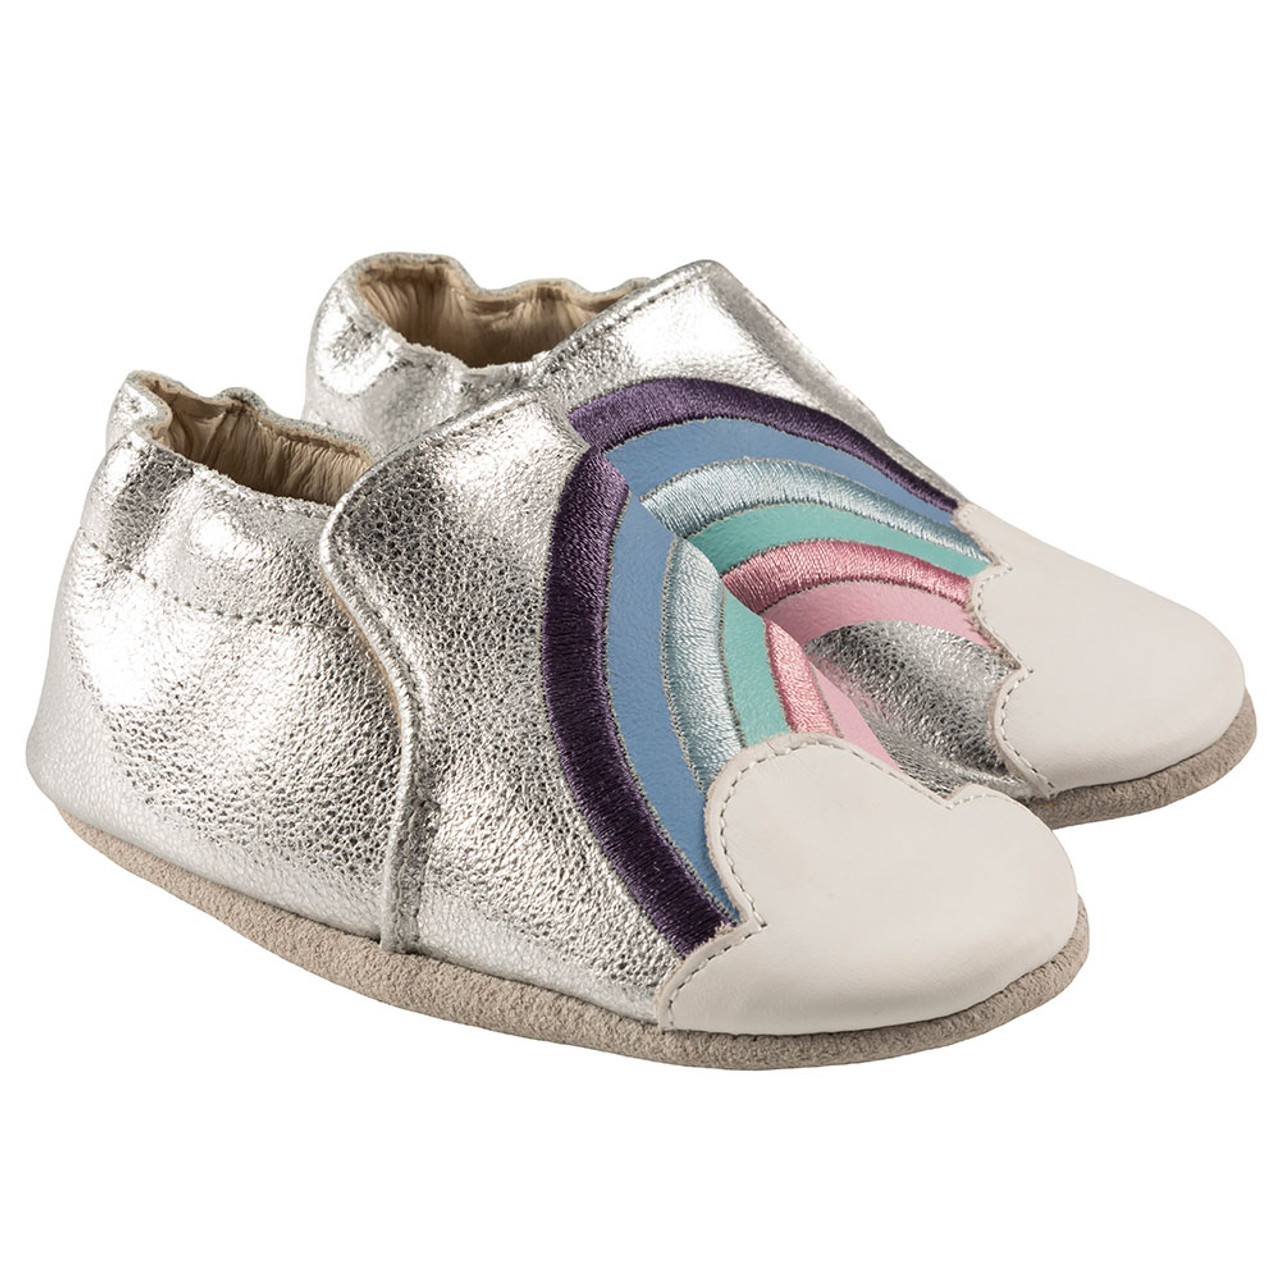 Hope  Soft Soles   Baby Shoes   Robeez